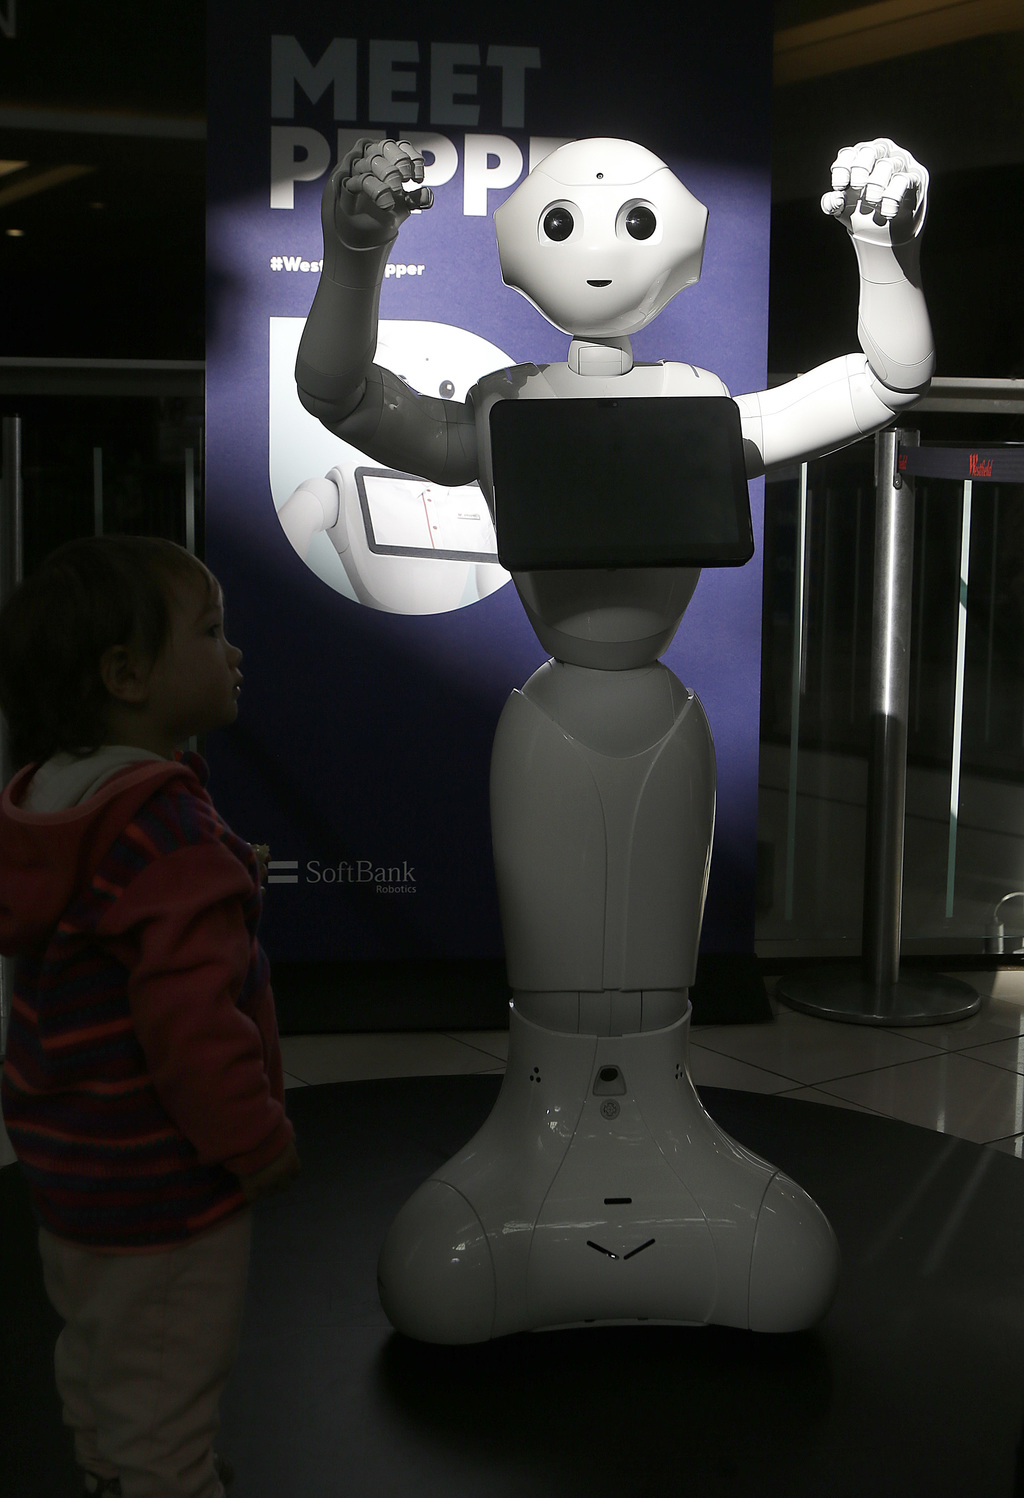 FILE - This Thursday, Dec. 22, 2016, file photo, shows Pepper the robot at Westfield Mall in San Francisco. The SoftBank Robotics human...